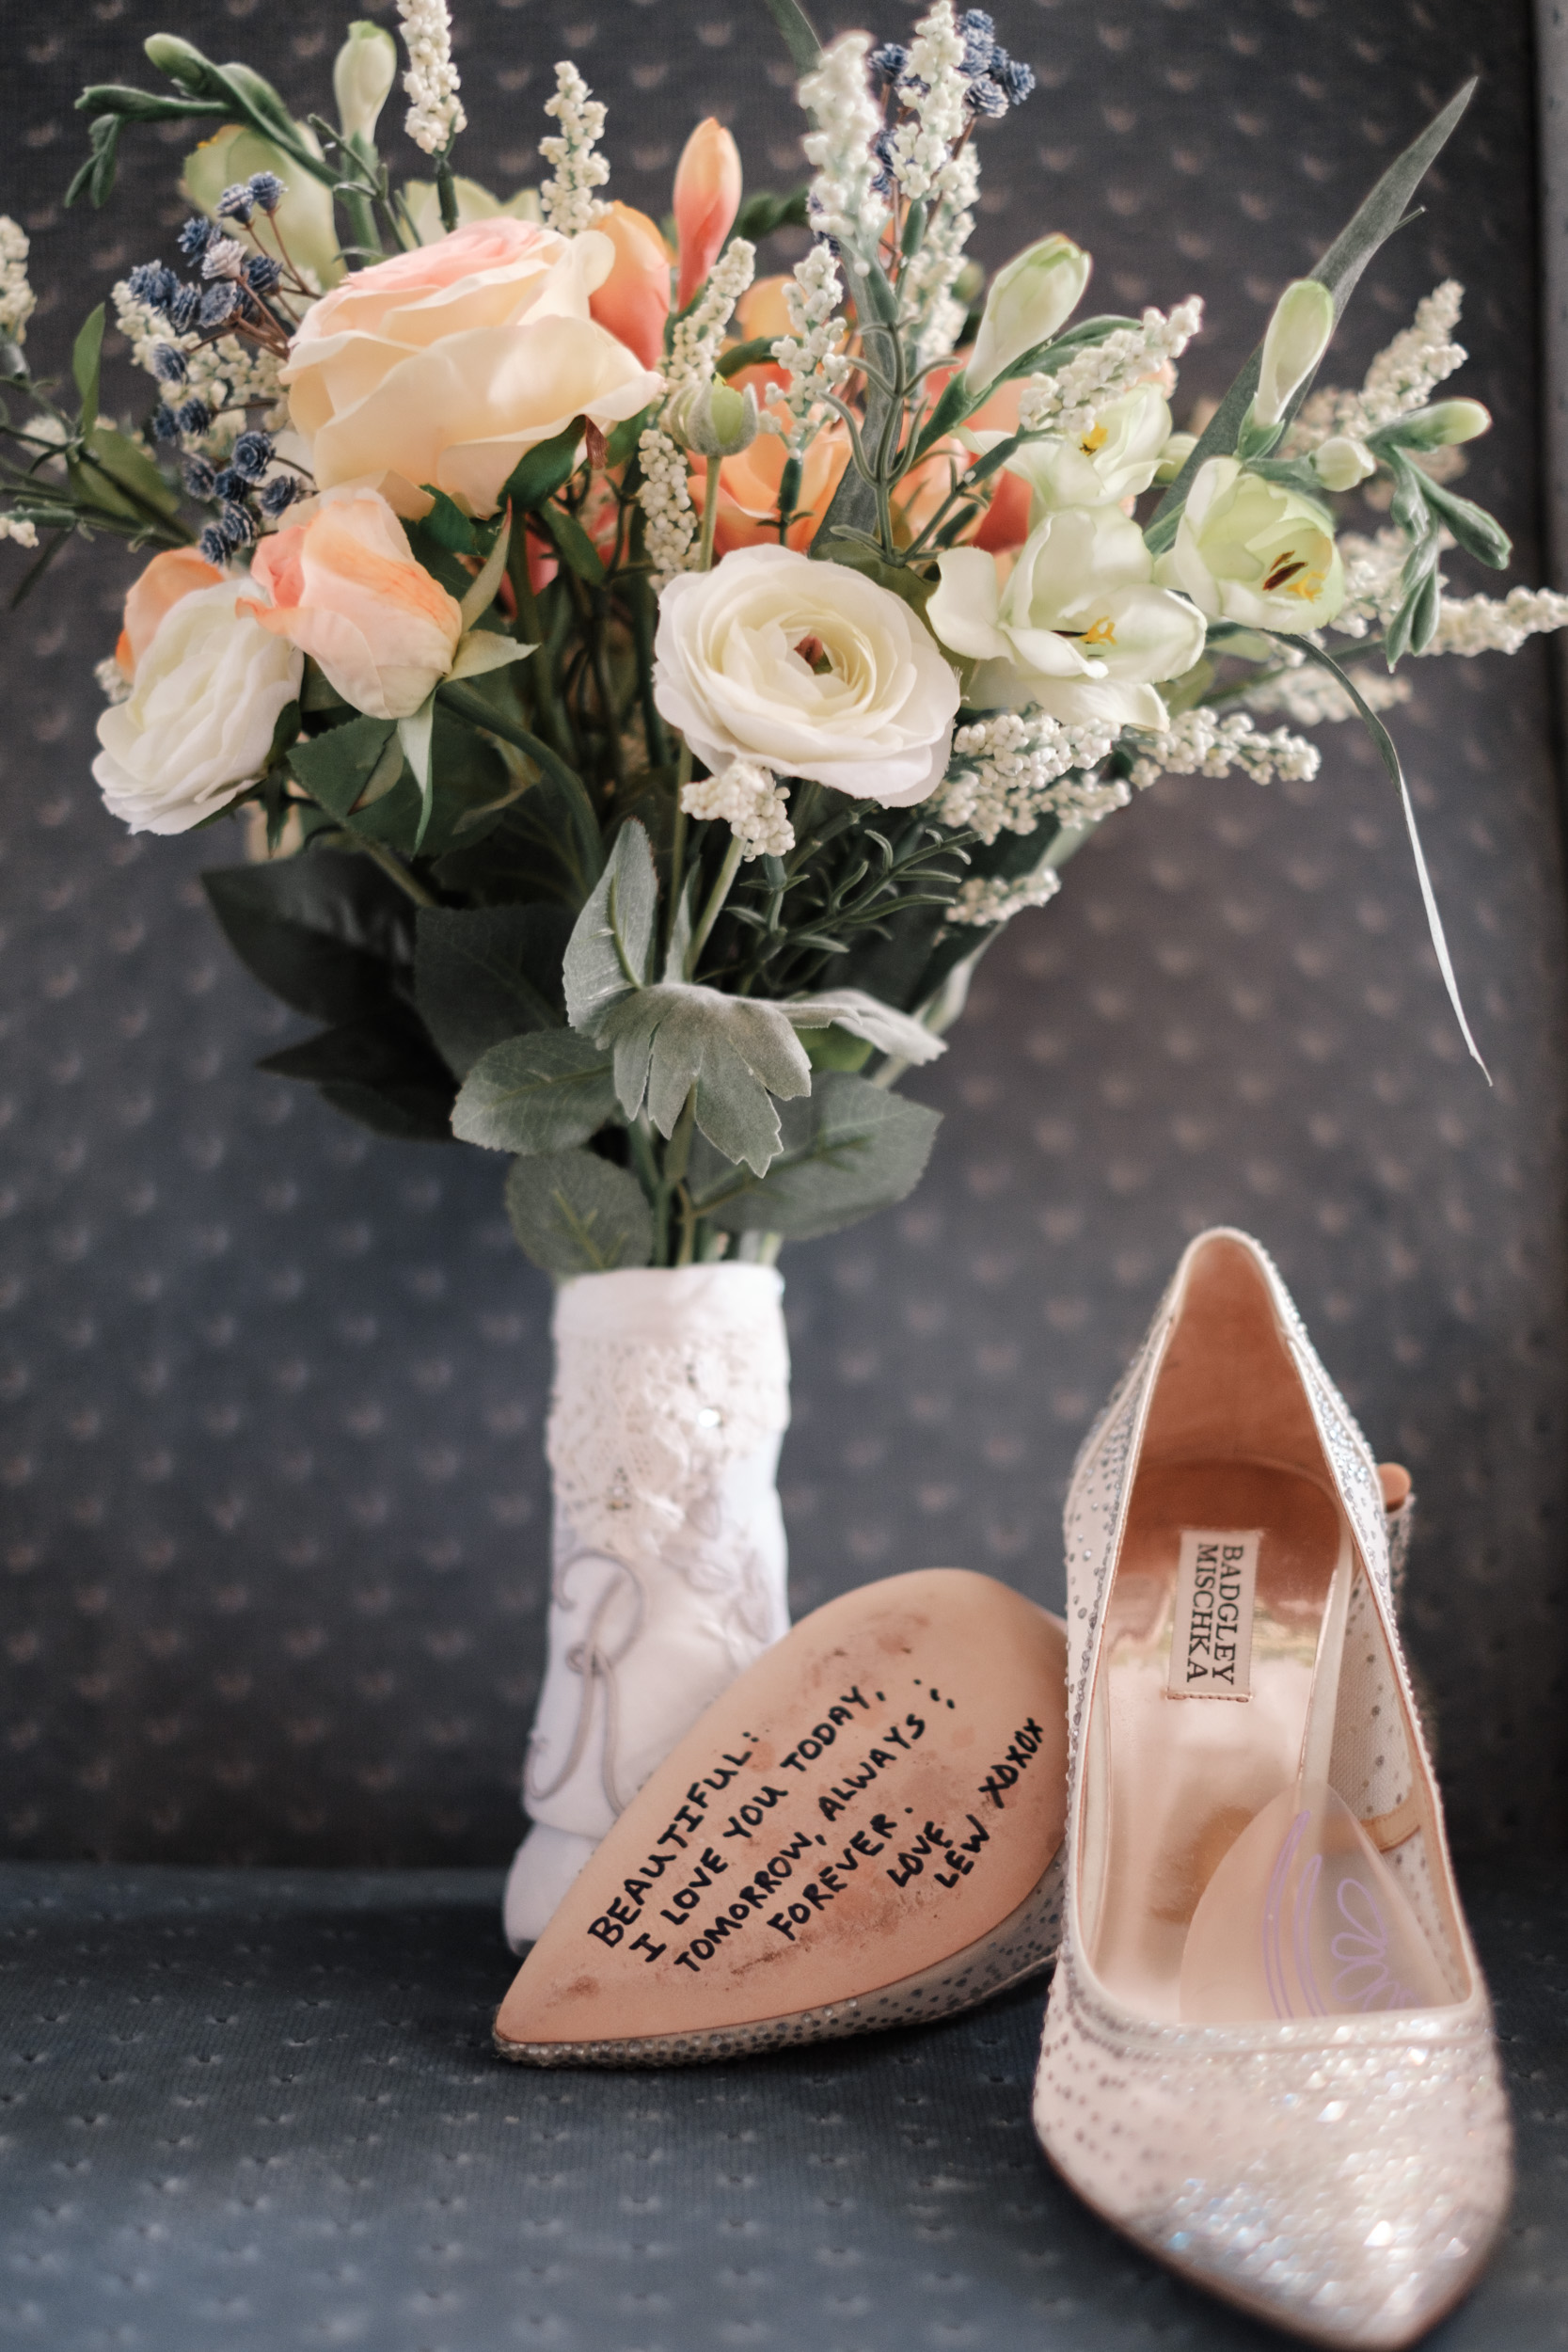 candid love note written on bride heels by groom on wedding day in crystal lake